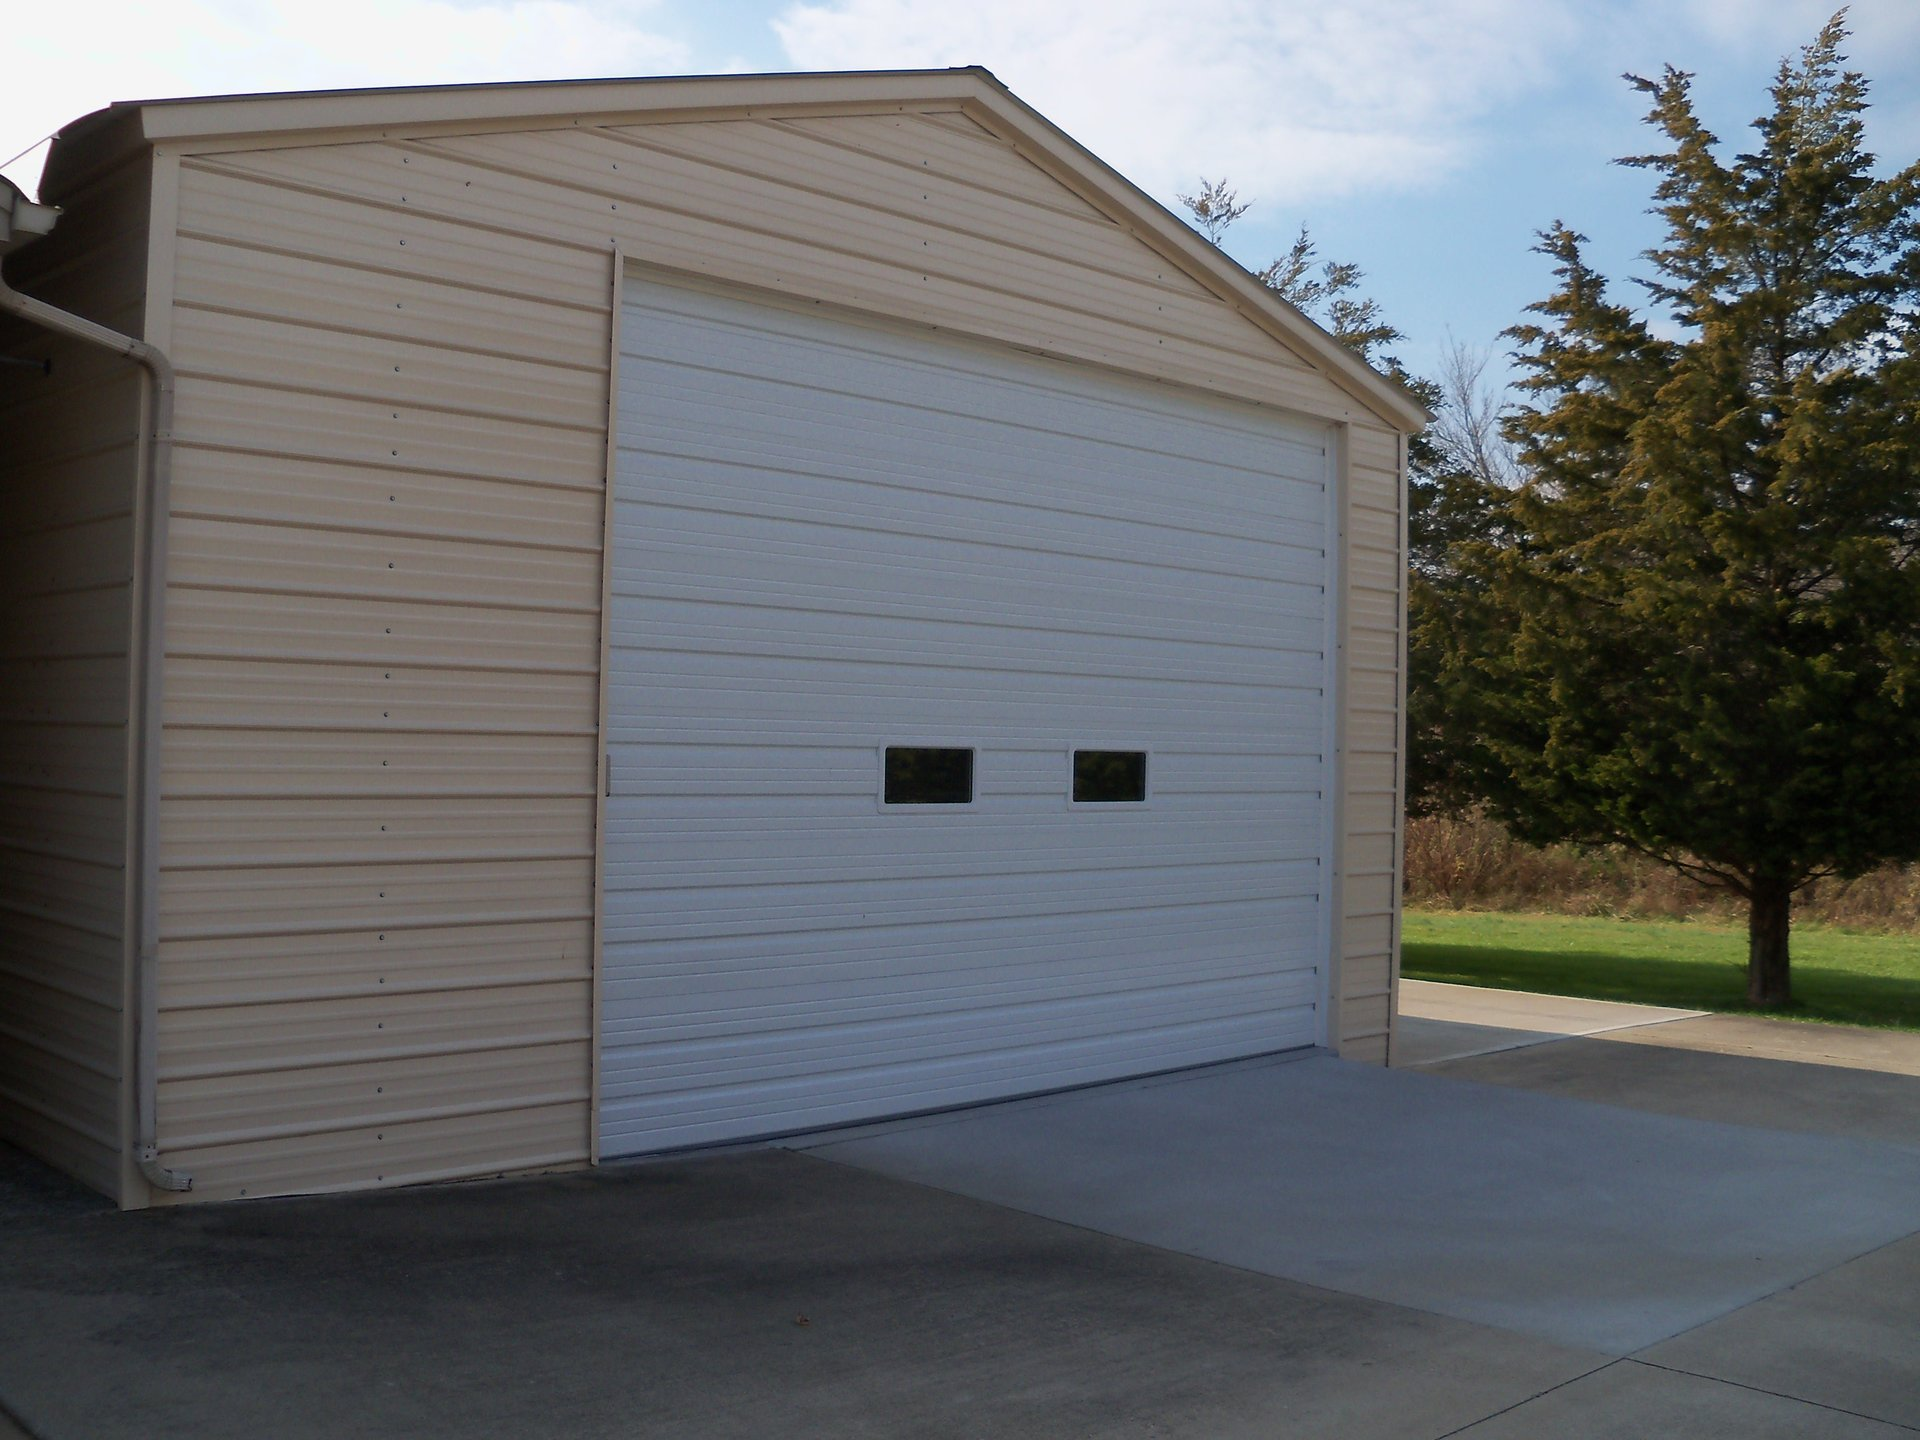 Garage doors advanced door systems west chester oh before rubansaba